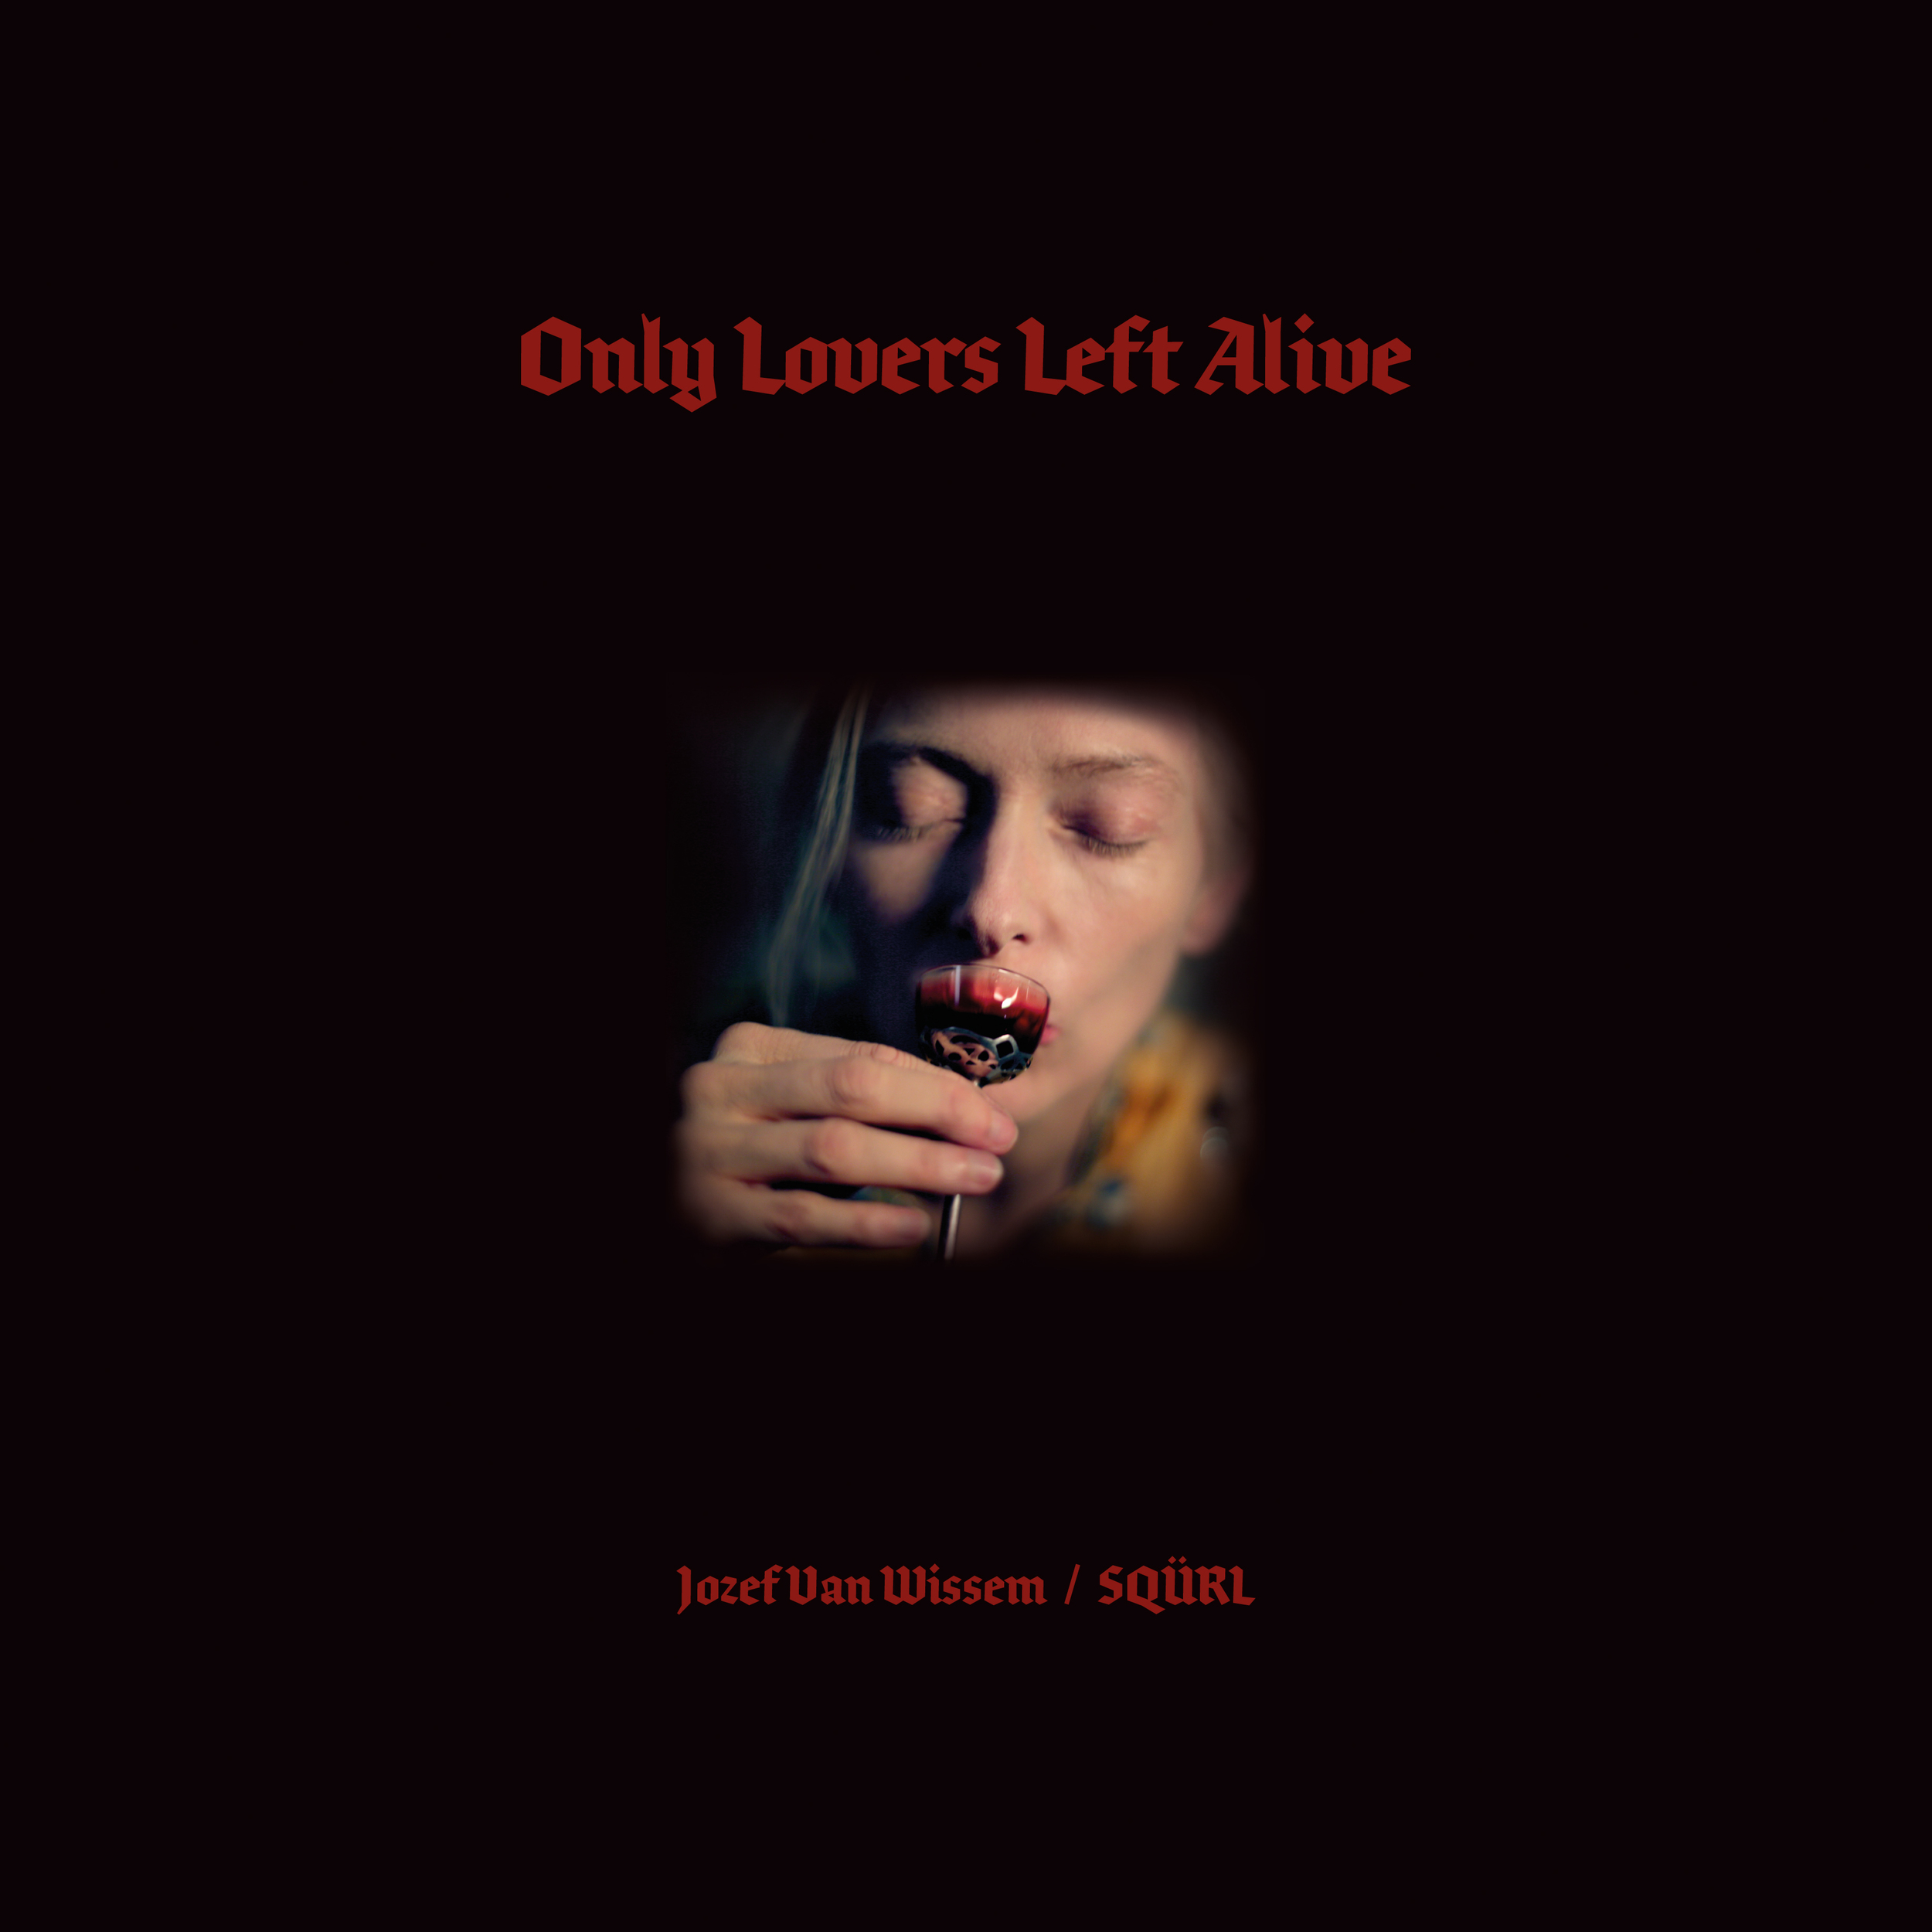 Only-Lovers_CD_cover-art LRG.jpg